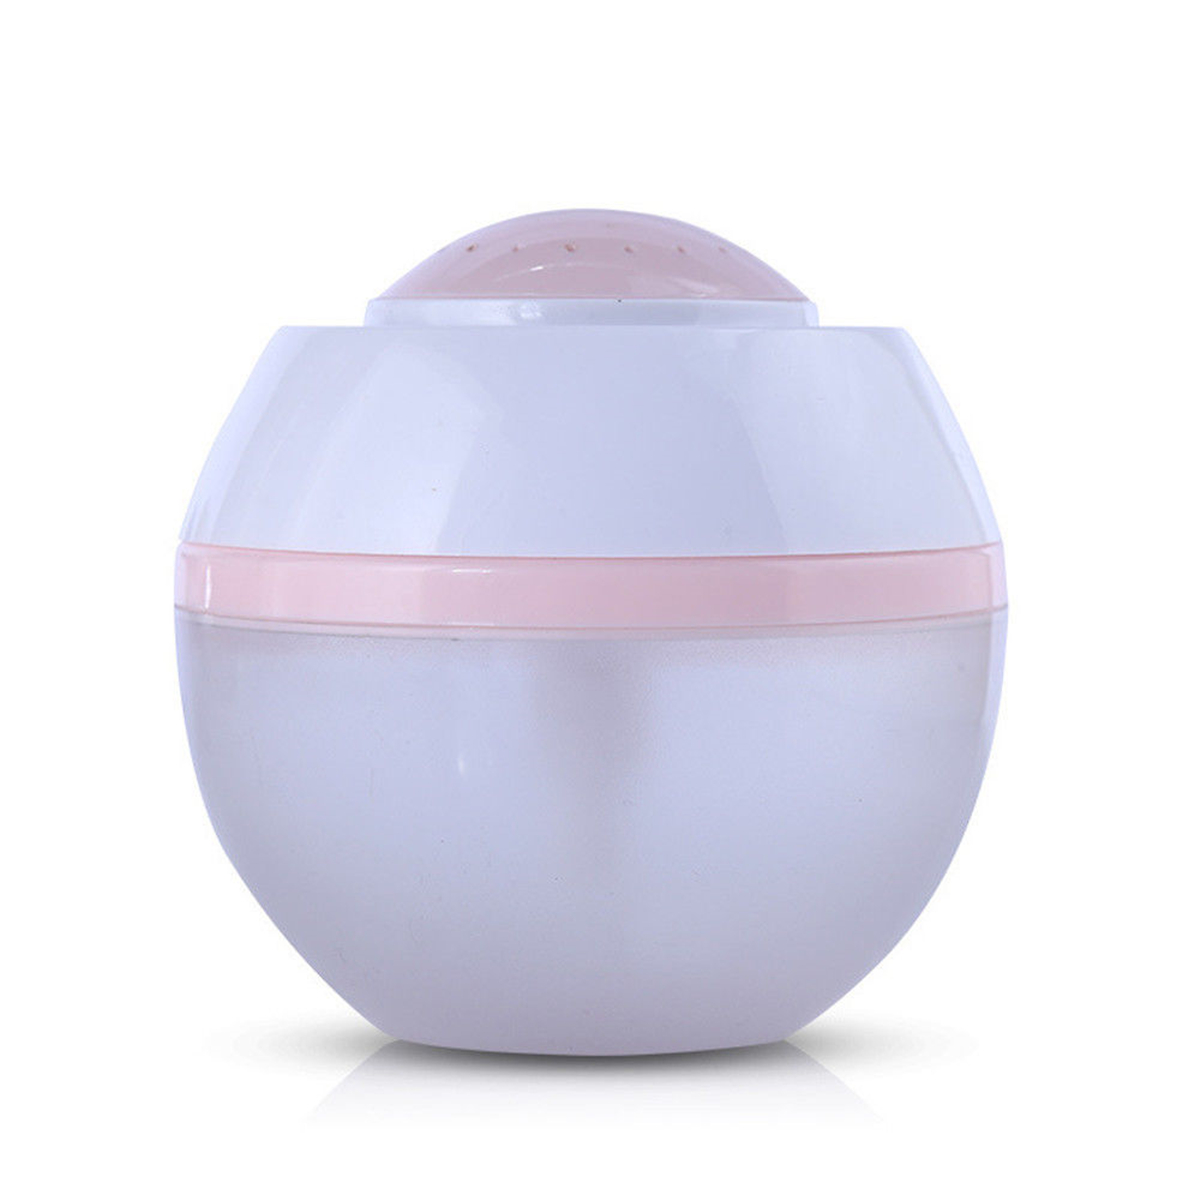 Portable-MIni-500ML-Aroma-Diffuser-Essential-Ultrasonic-Air-Humidifier-Purifier